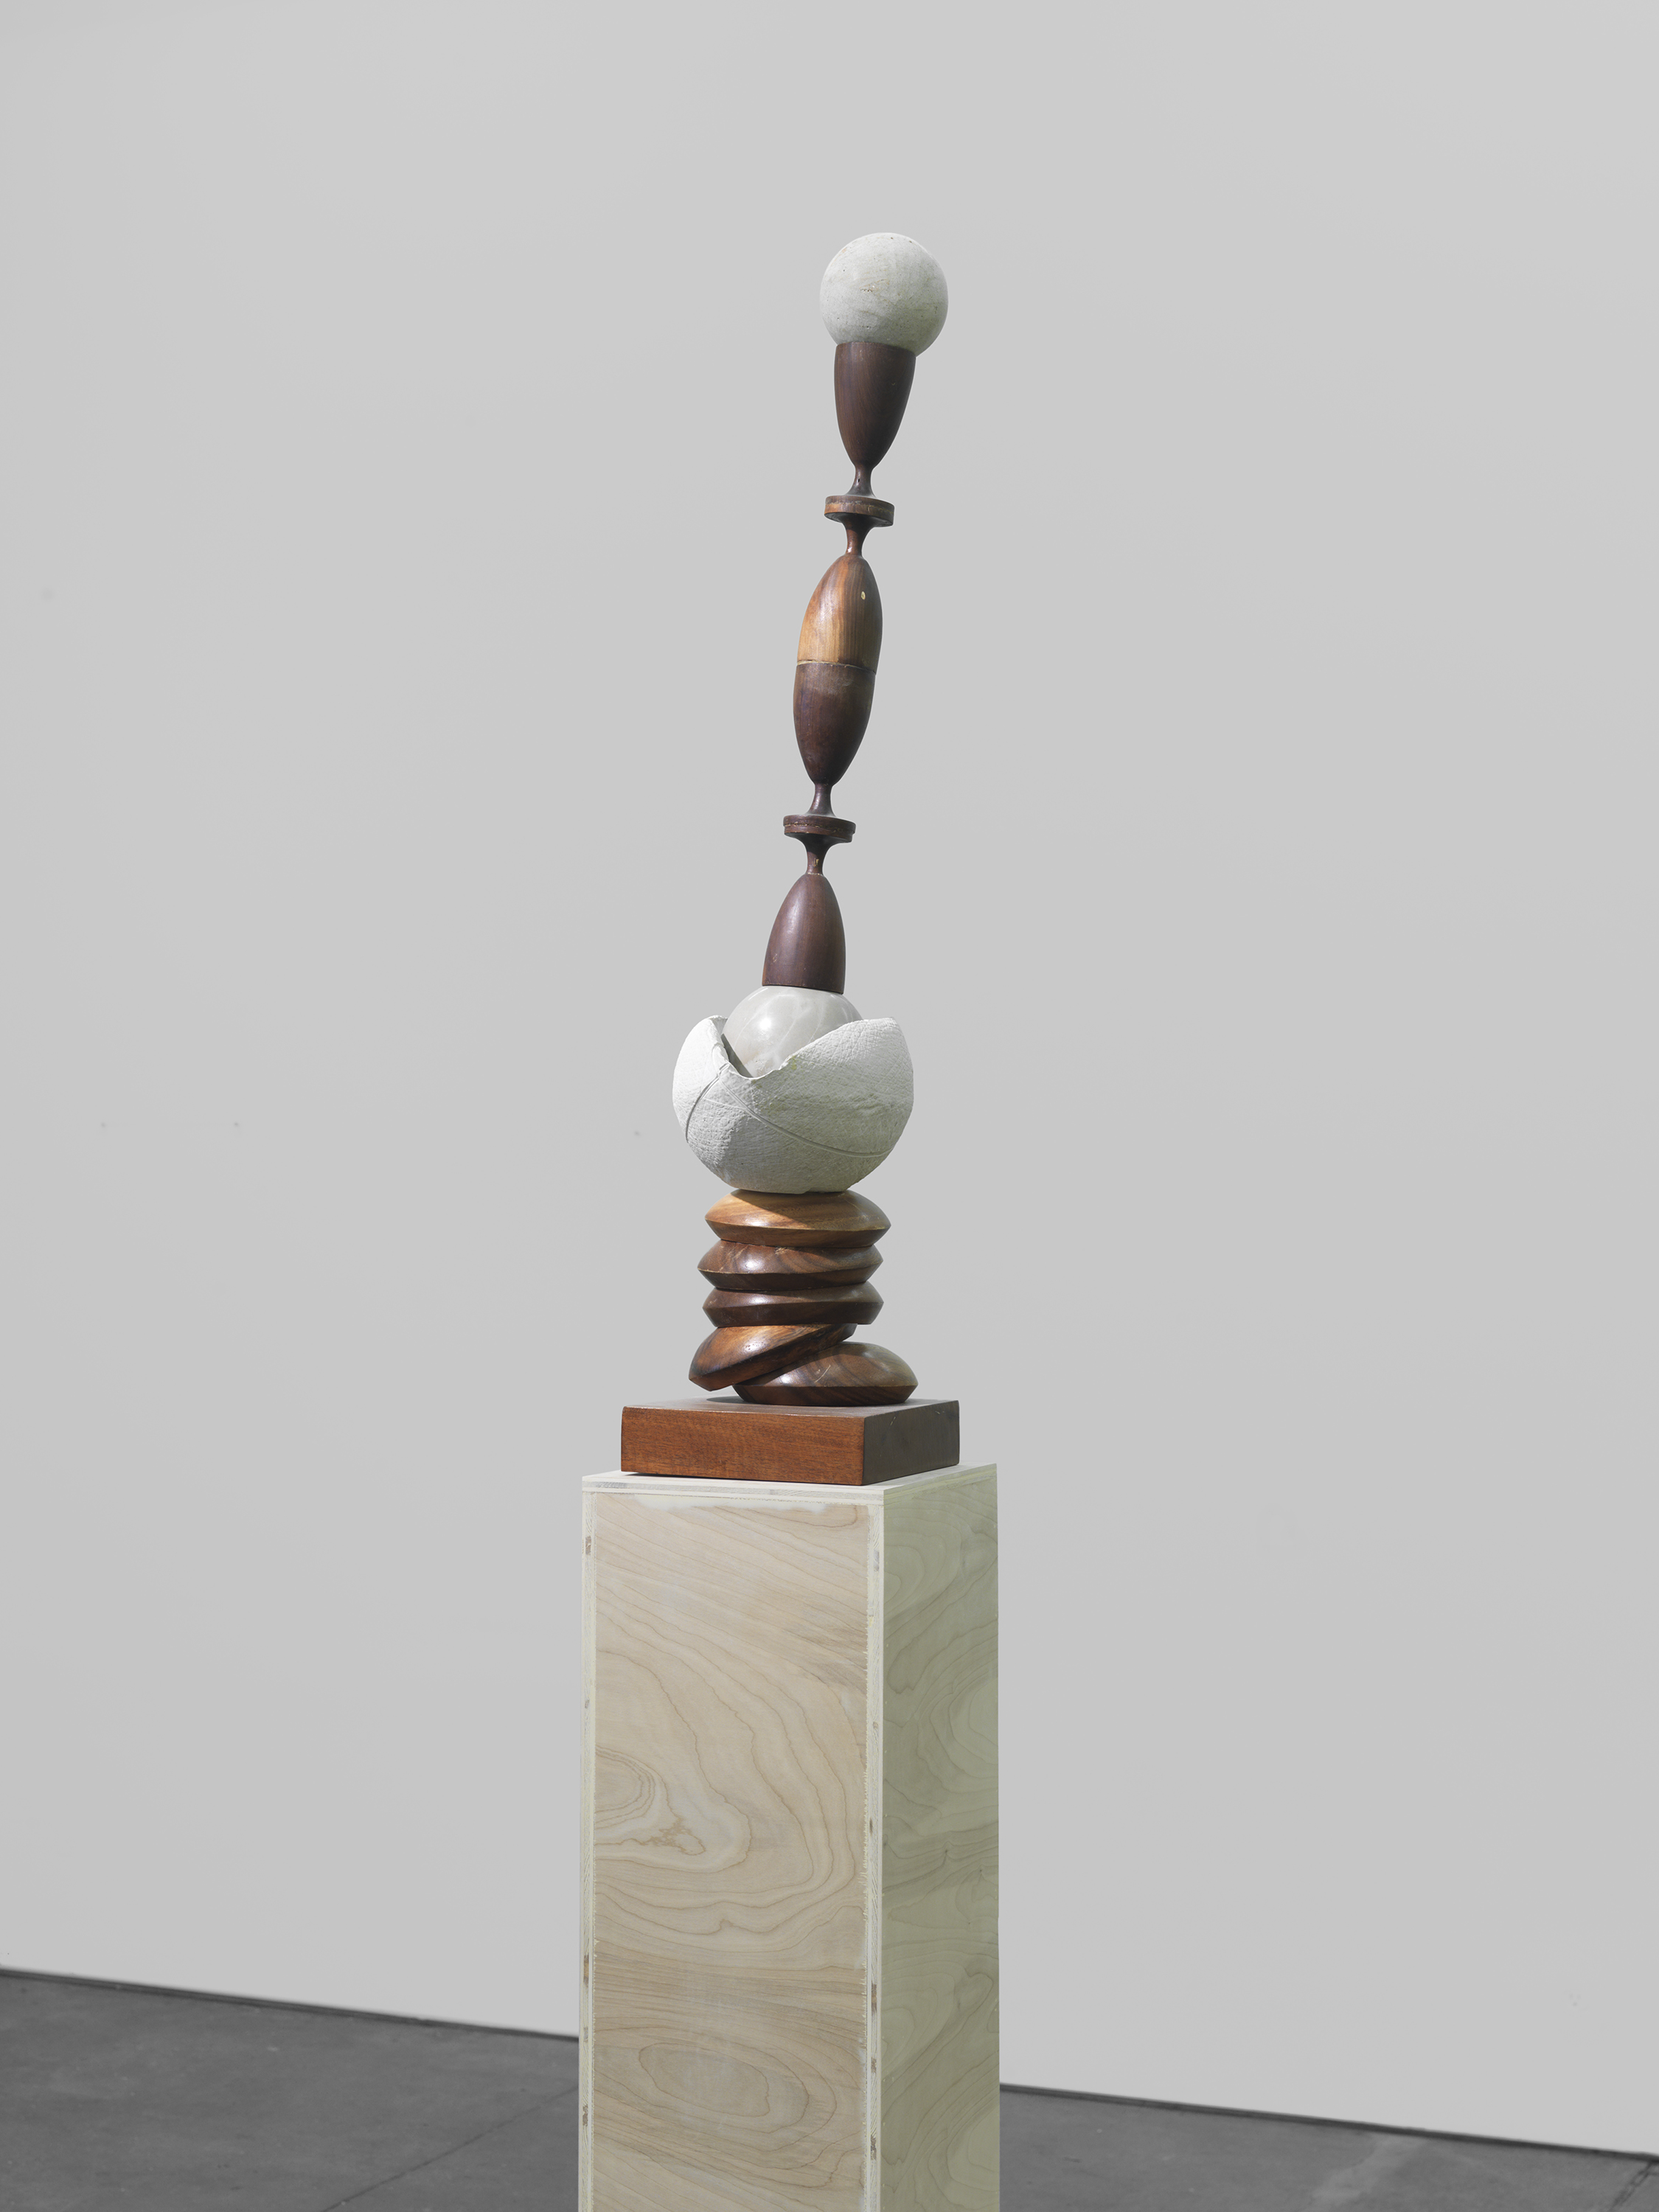 Jason Bailer Losh  John's Bronze, when a friend comes..., 2016 Walnut, ultracal, steel, concrete and pine  39.5 x 8 x 10 inches